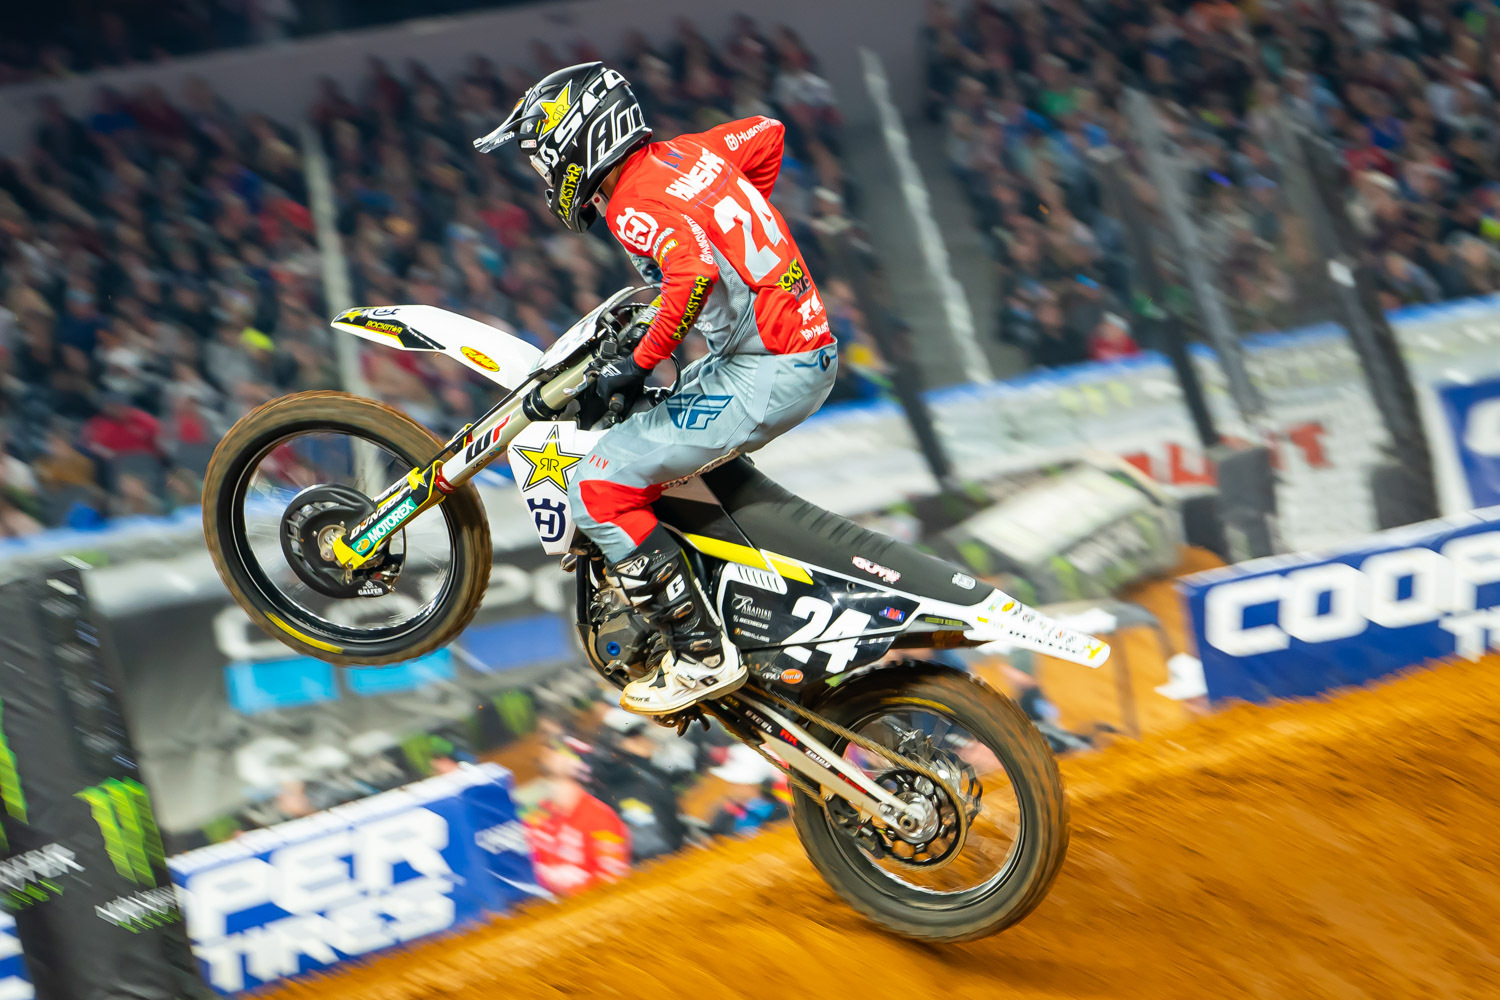 2020-ARLINGTON-SUPERCROSS_KICKSTART_0067